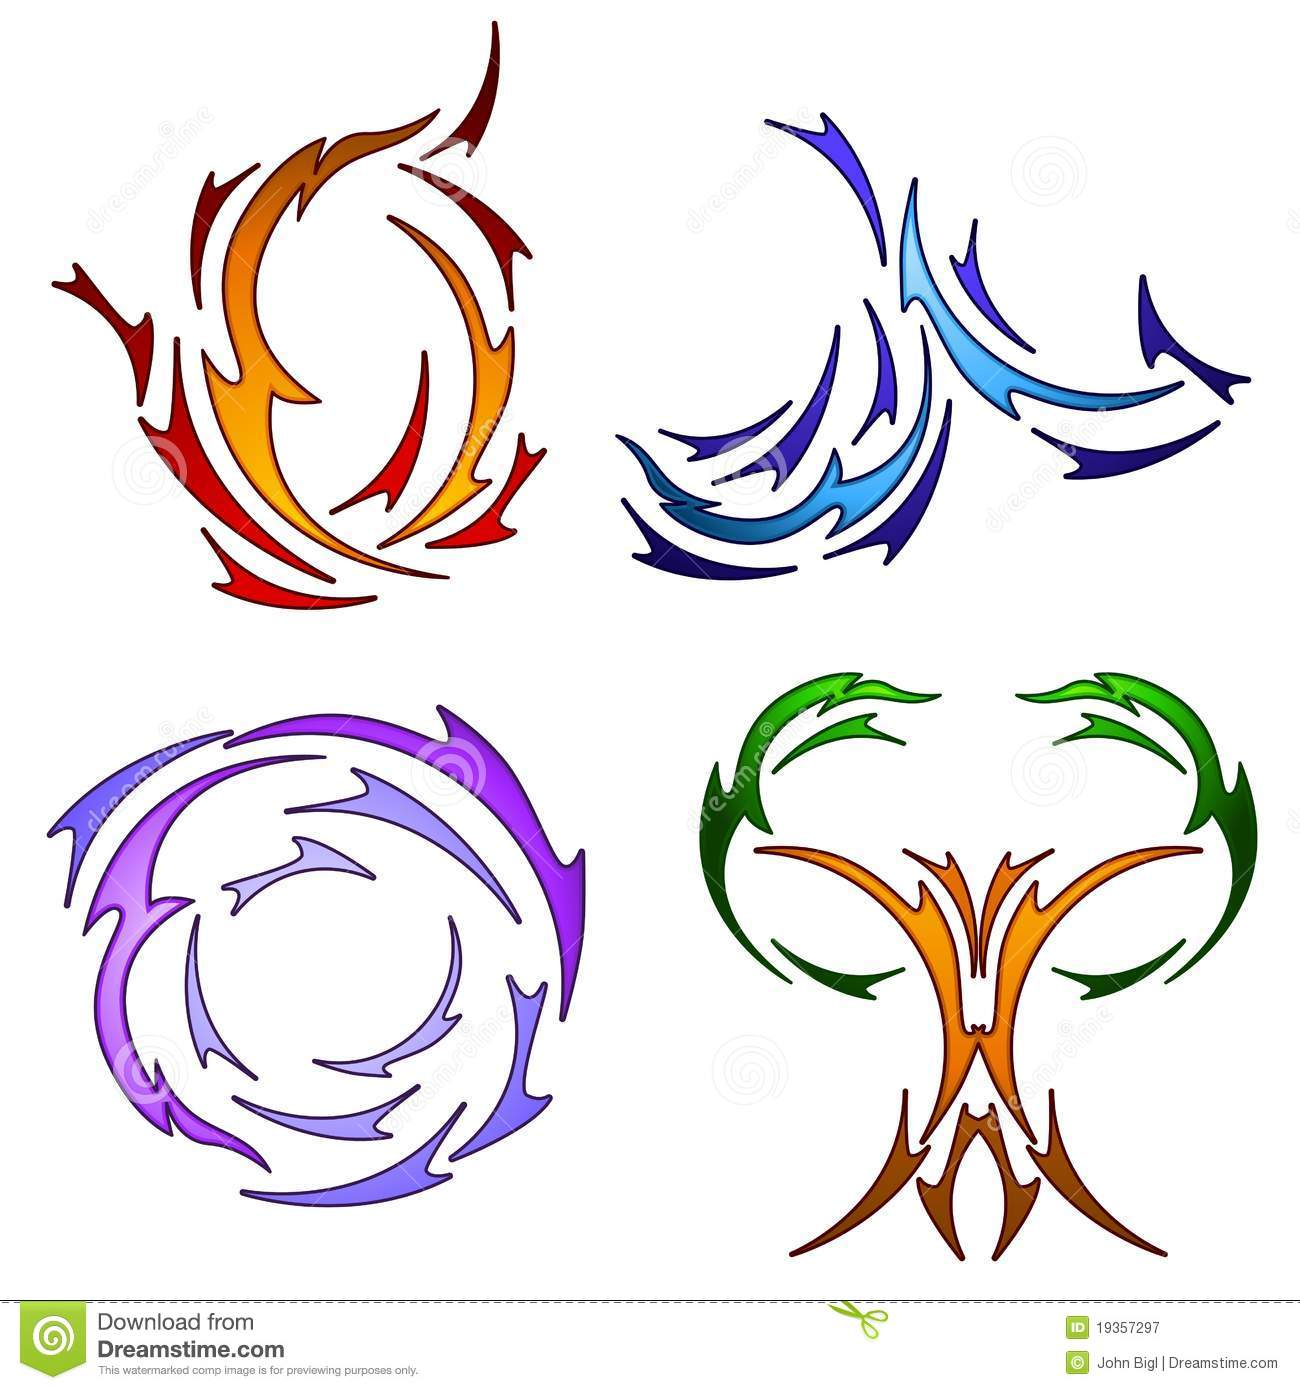 More similar stock images of ` Tattoo style element symbols `